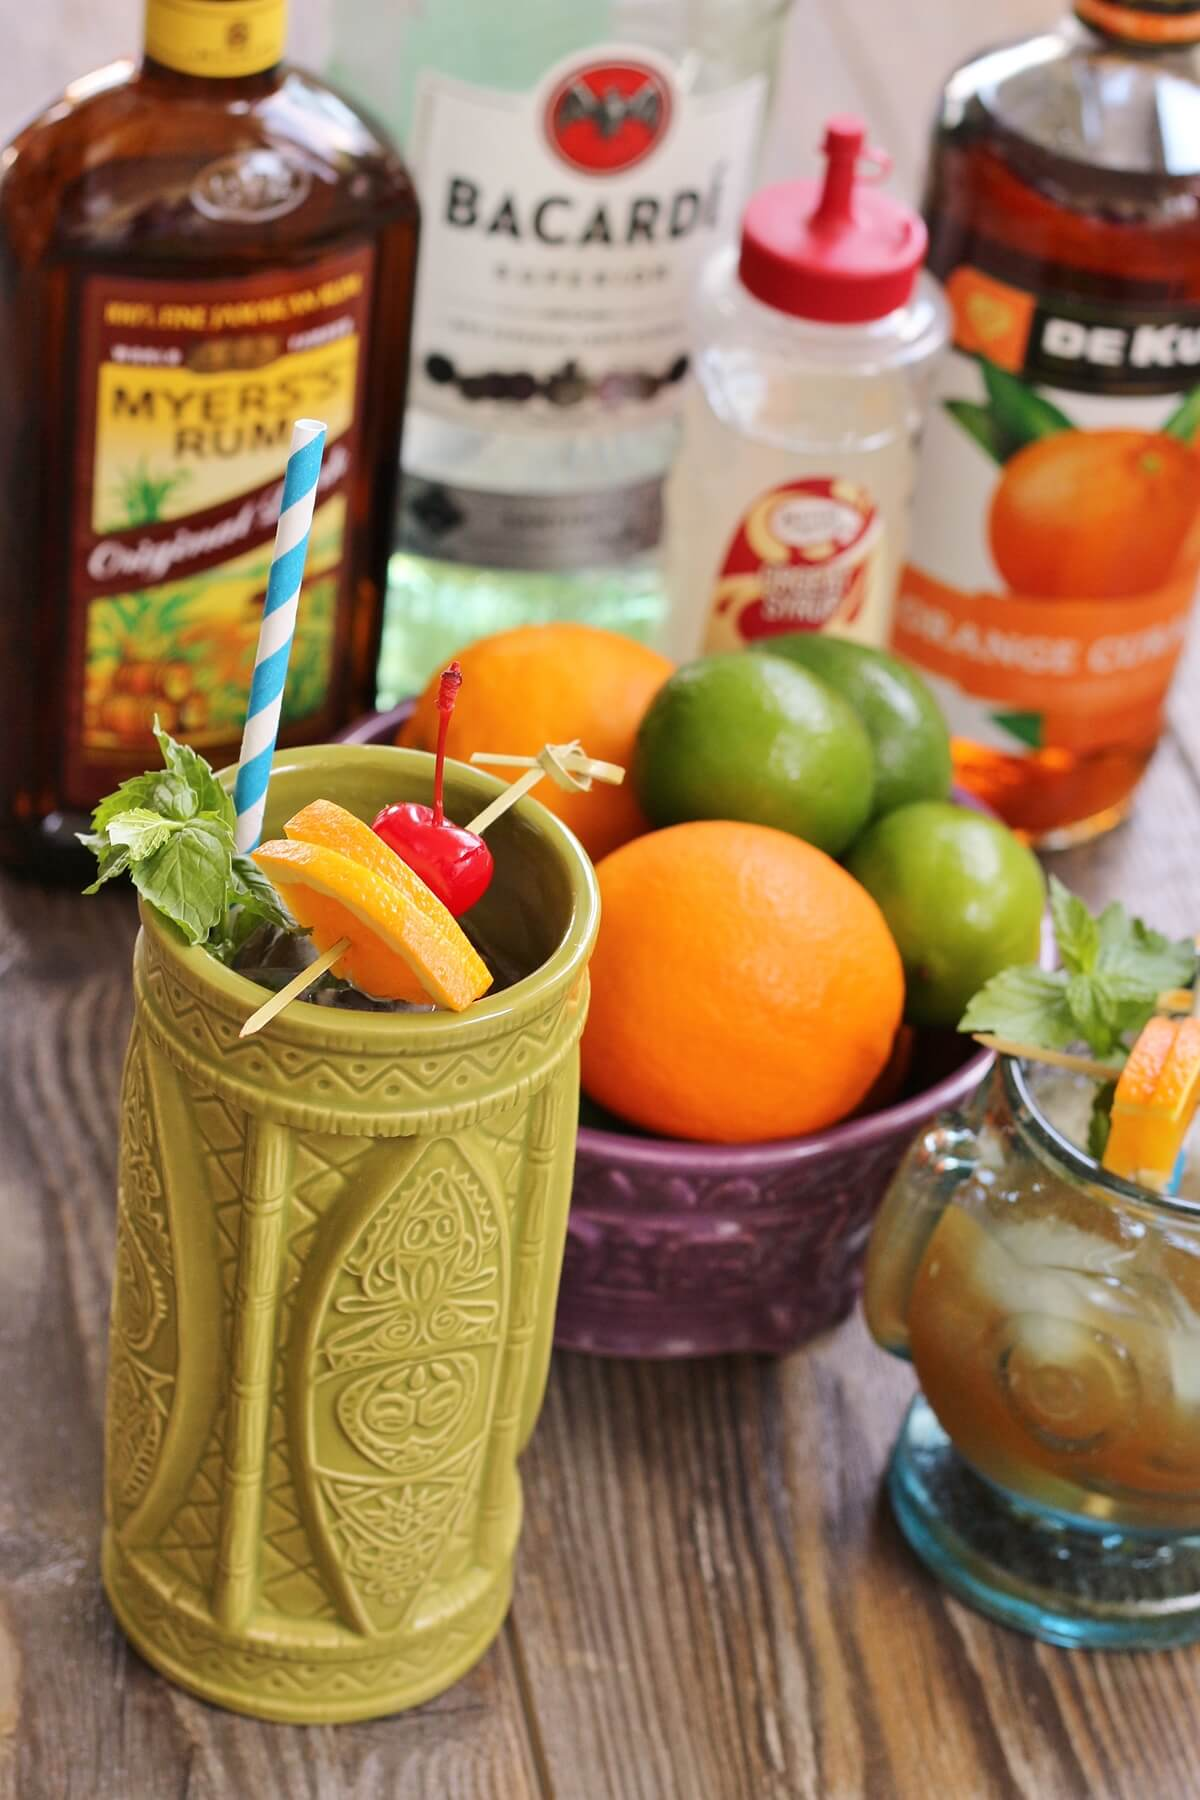 two tiki drinks, a bowl of oranges and limes, and bottles of liquor